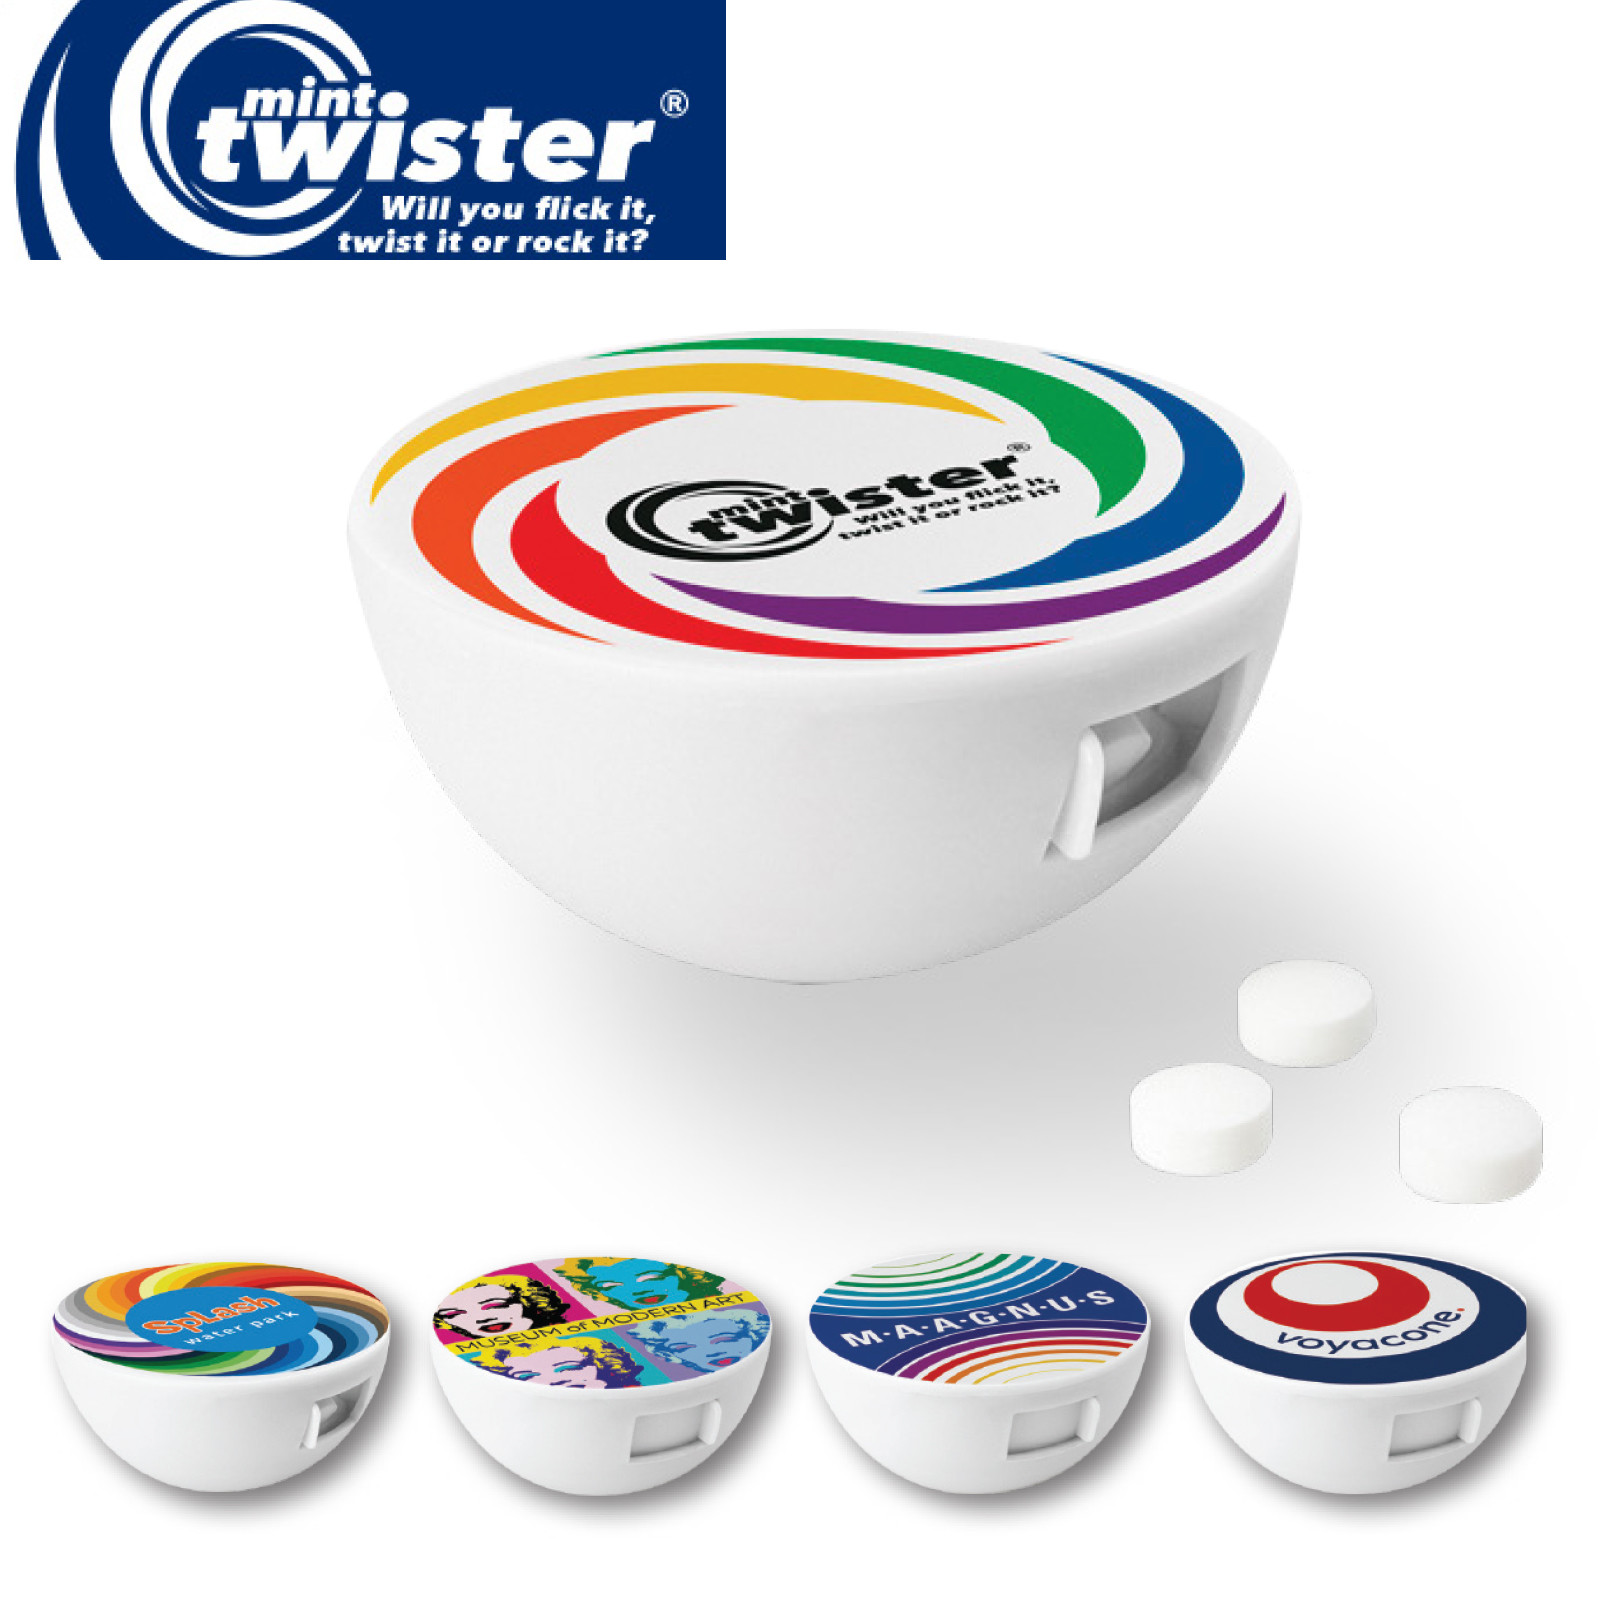 Promotional Product Mint Twister